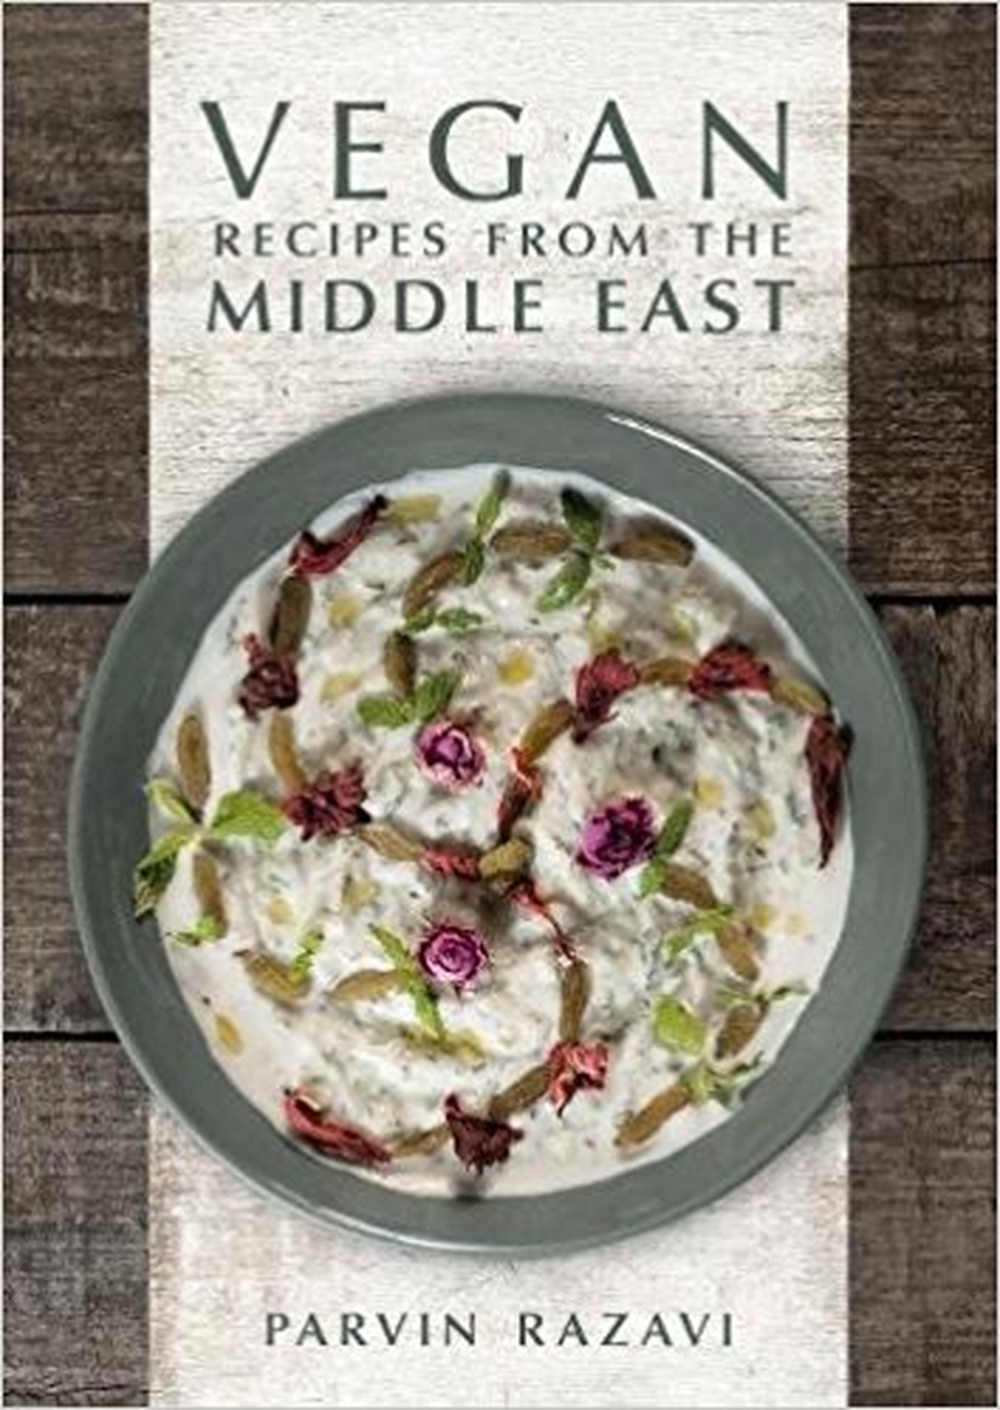 VEGAN Recipes from the Middle East, Parvin Razavi, published by Grub Street, London